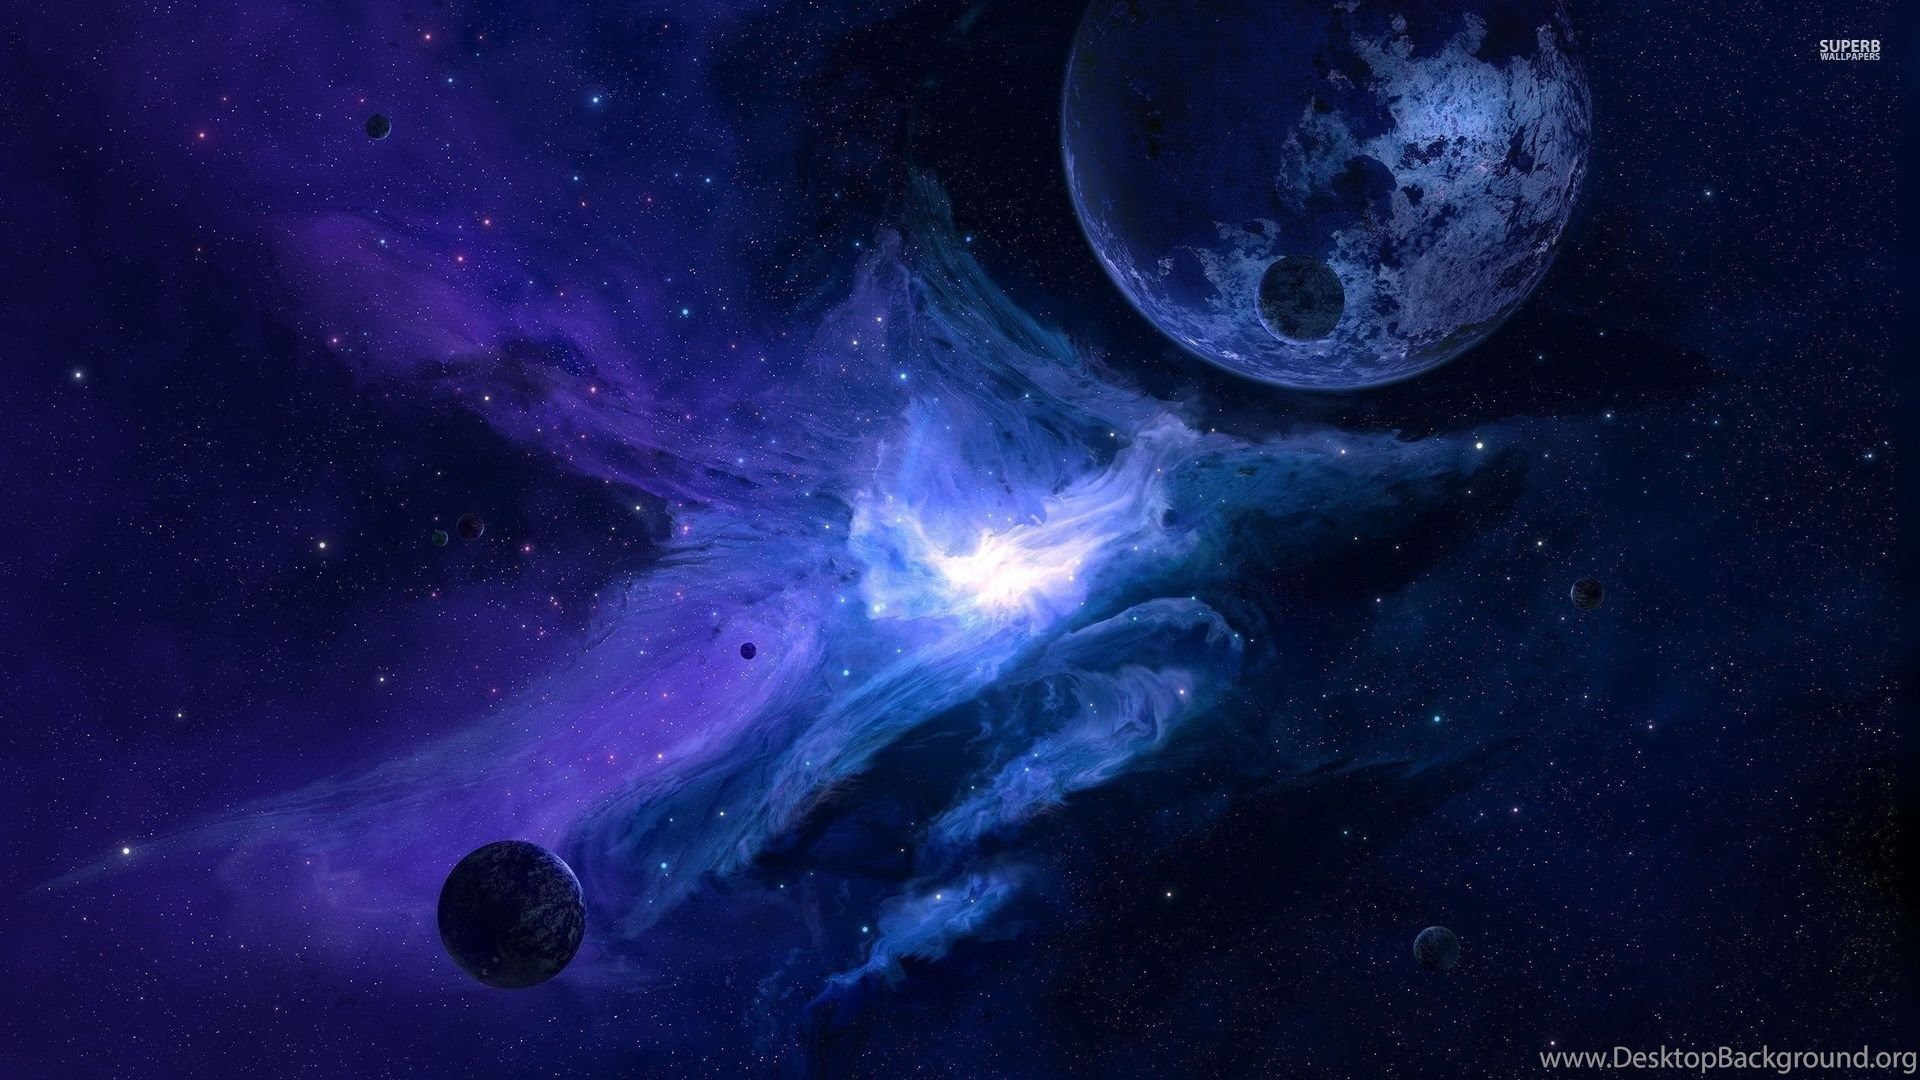 Planet In The Blue Galaxy Wallpapers Space Wallpapers Desktop Background